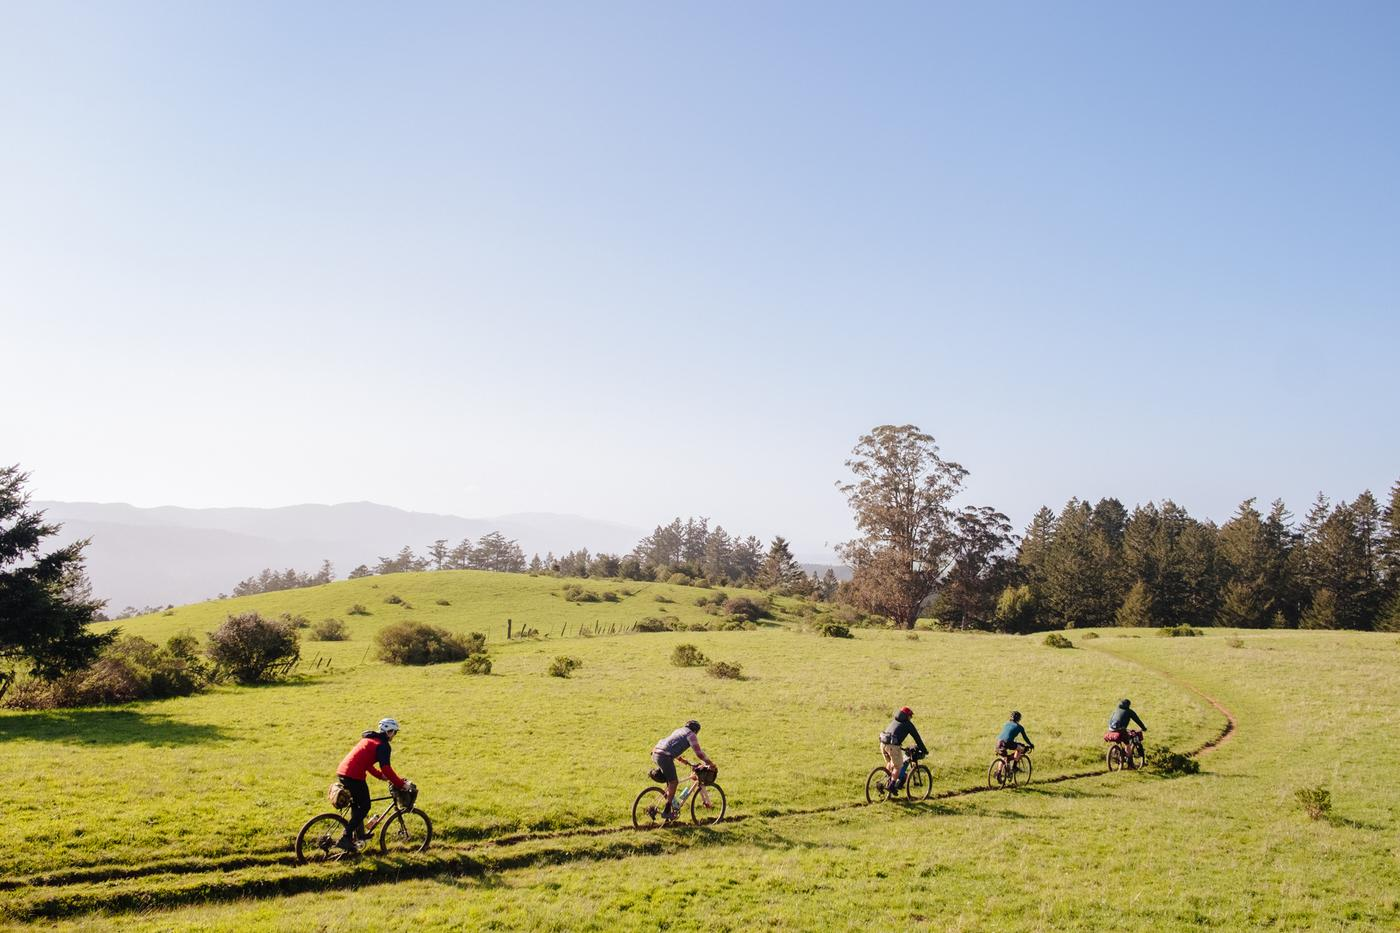 The Salted, Green, Grassy Hills: a Bicycle Tour Into the Marin Headlands